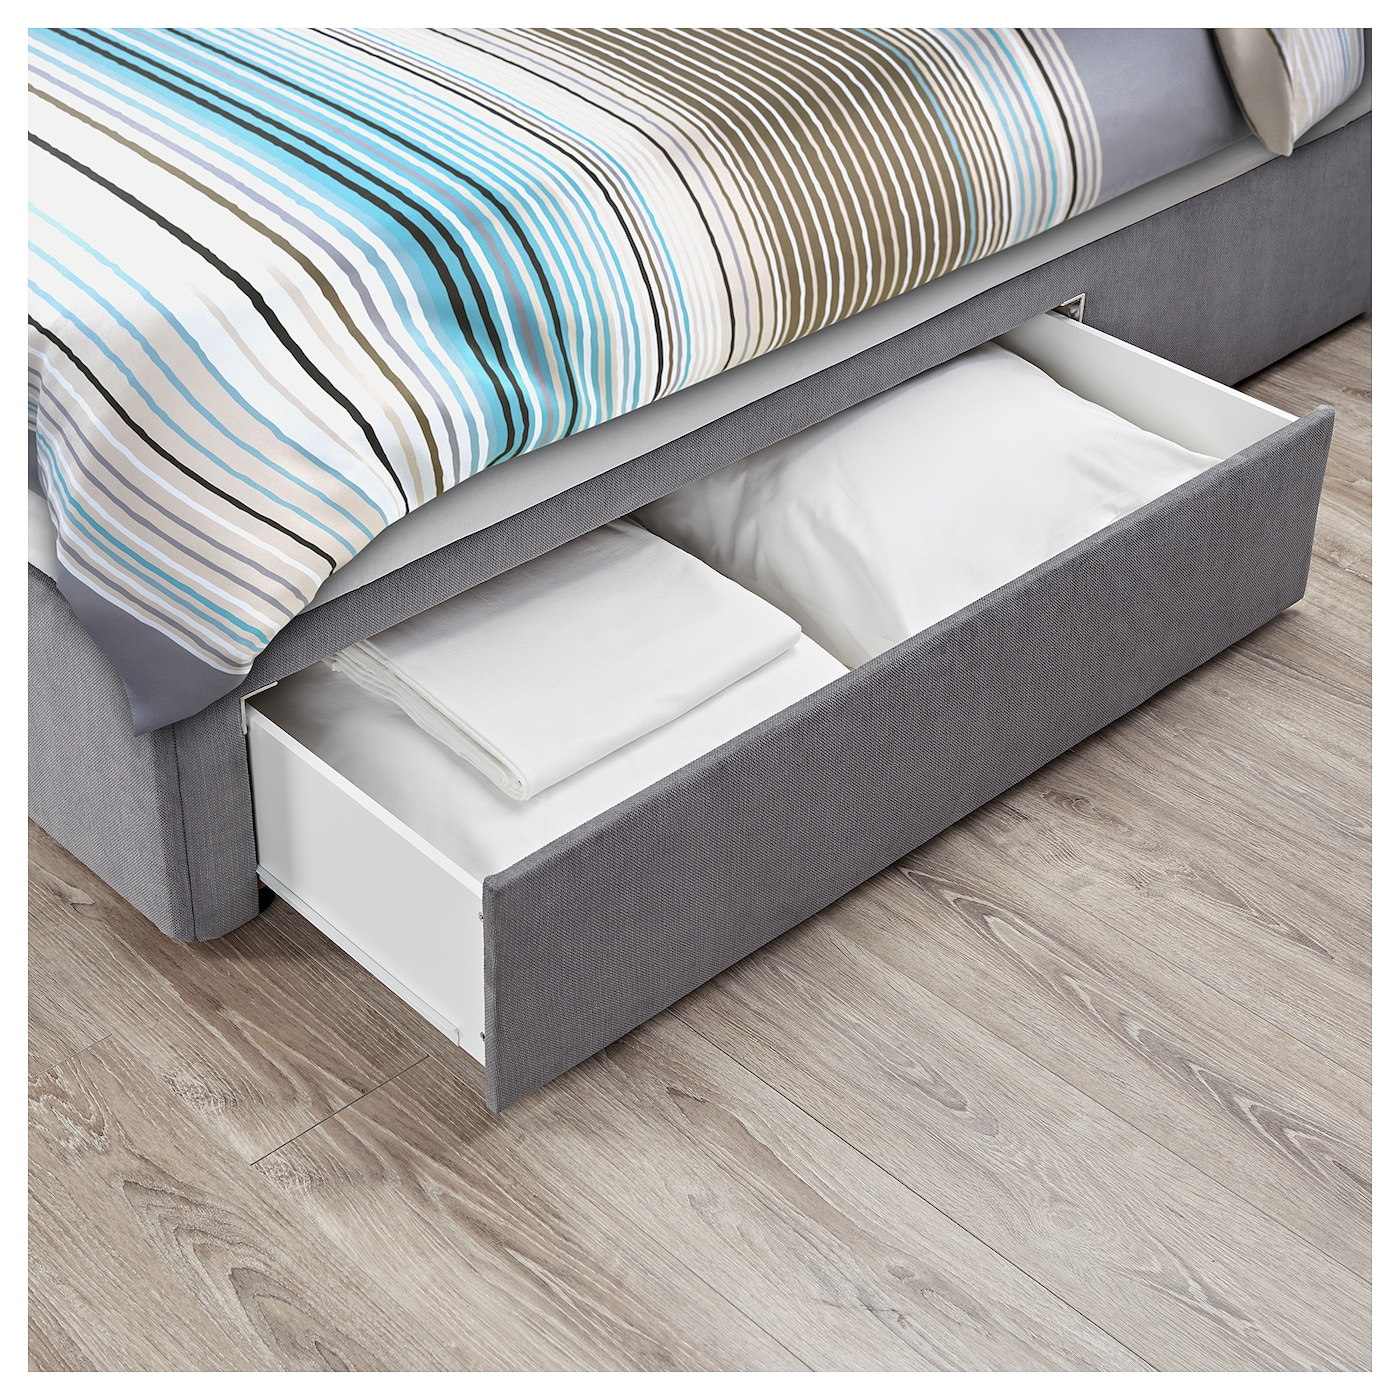 Rugsund Divan Base With 2 Drawers Tallmyra Grey Standard King Ikea